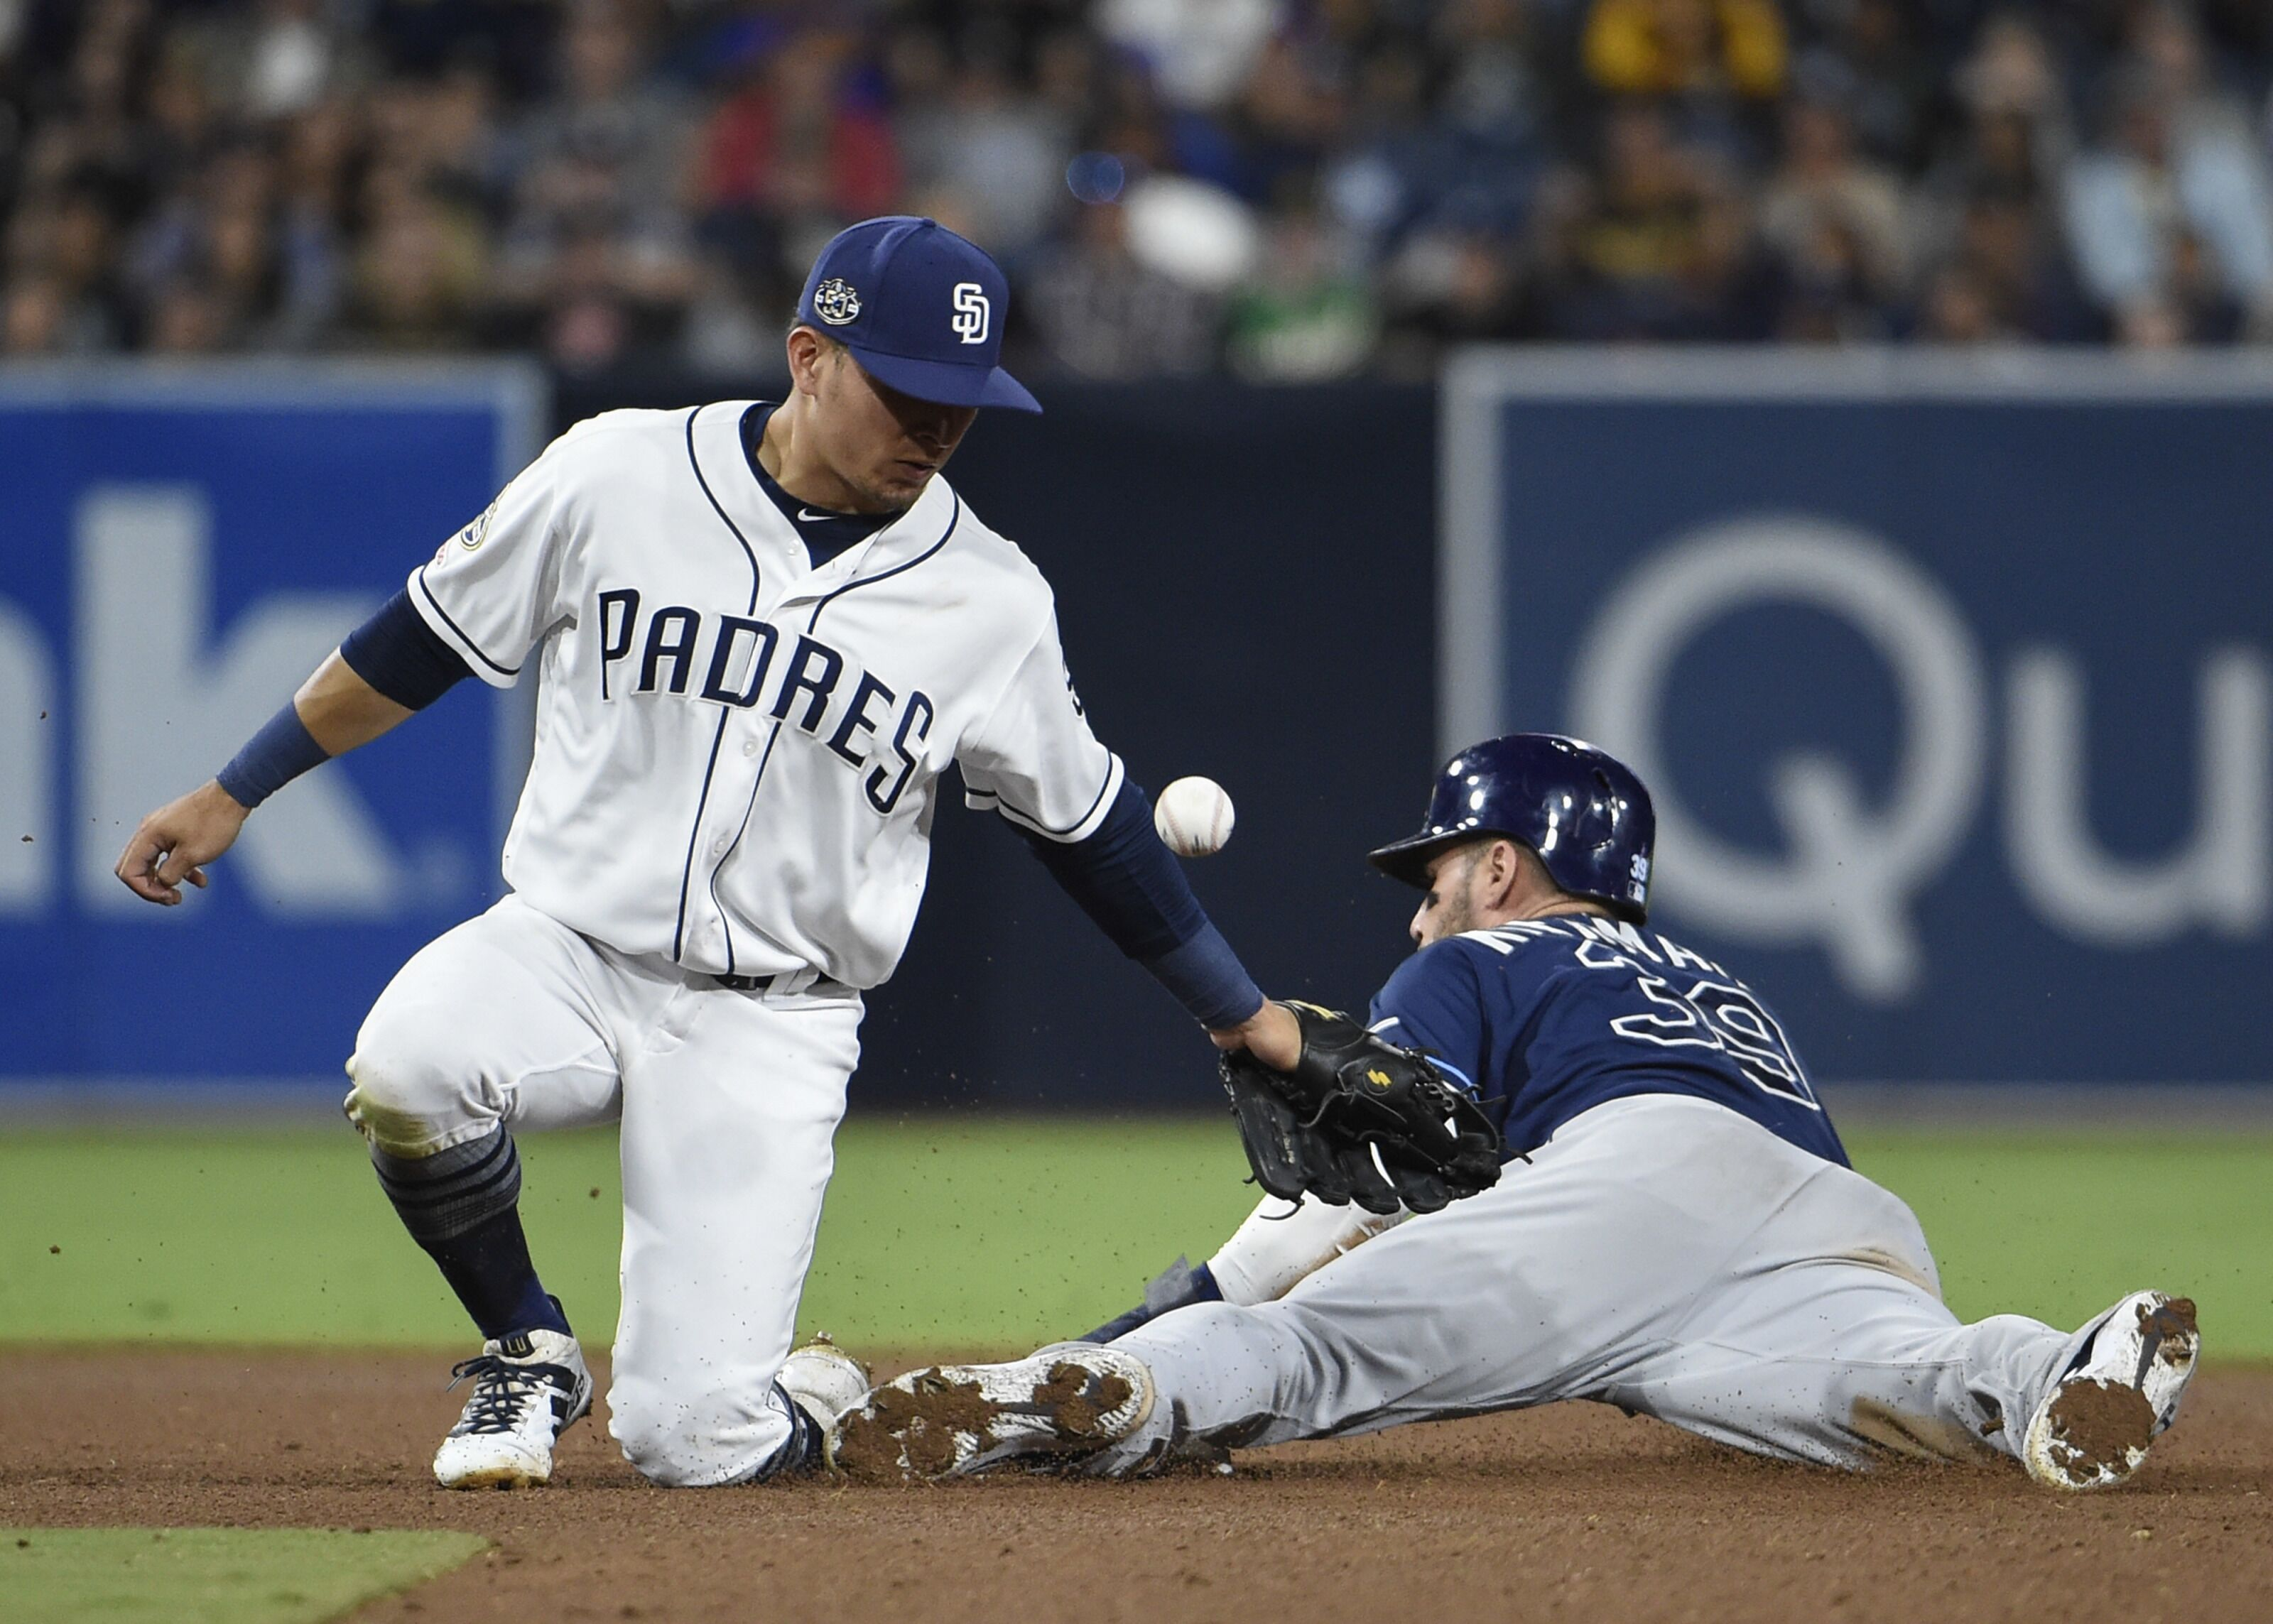 San Diego Padres bullpen fails again in lopsided loss to Rays